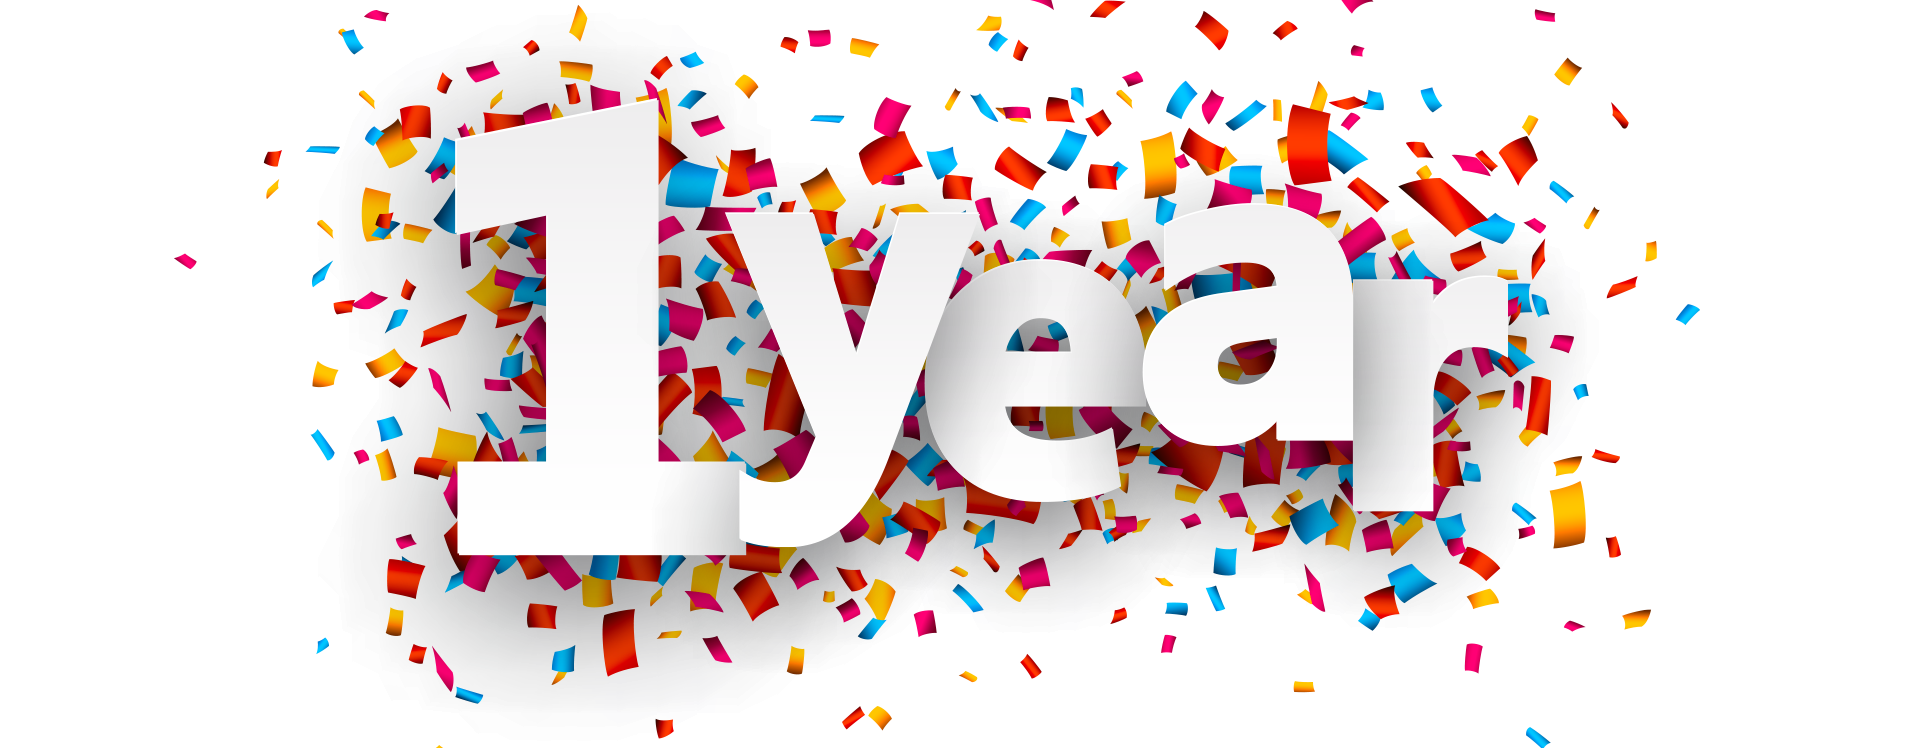 One year anniversary | Blog | Kingdom Maintenance Services | Fife graphic royalty free library